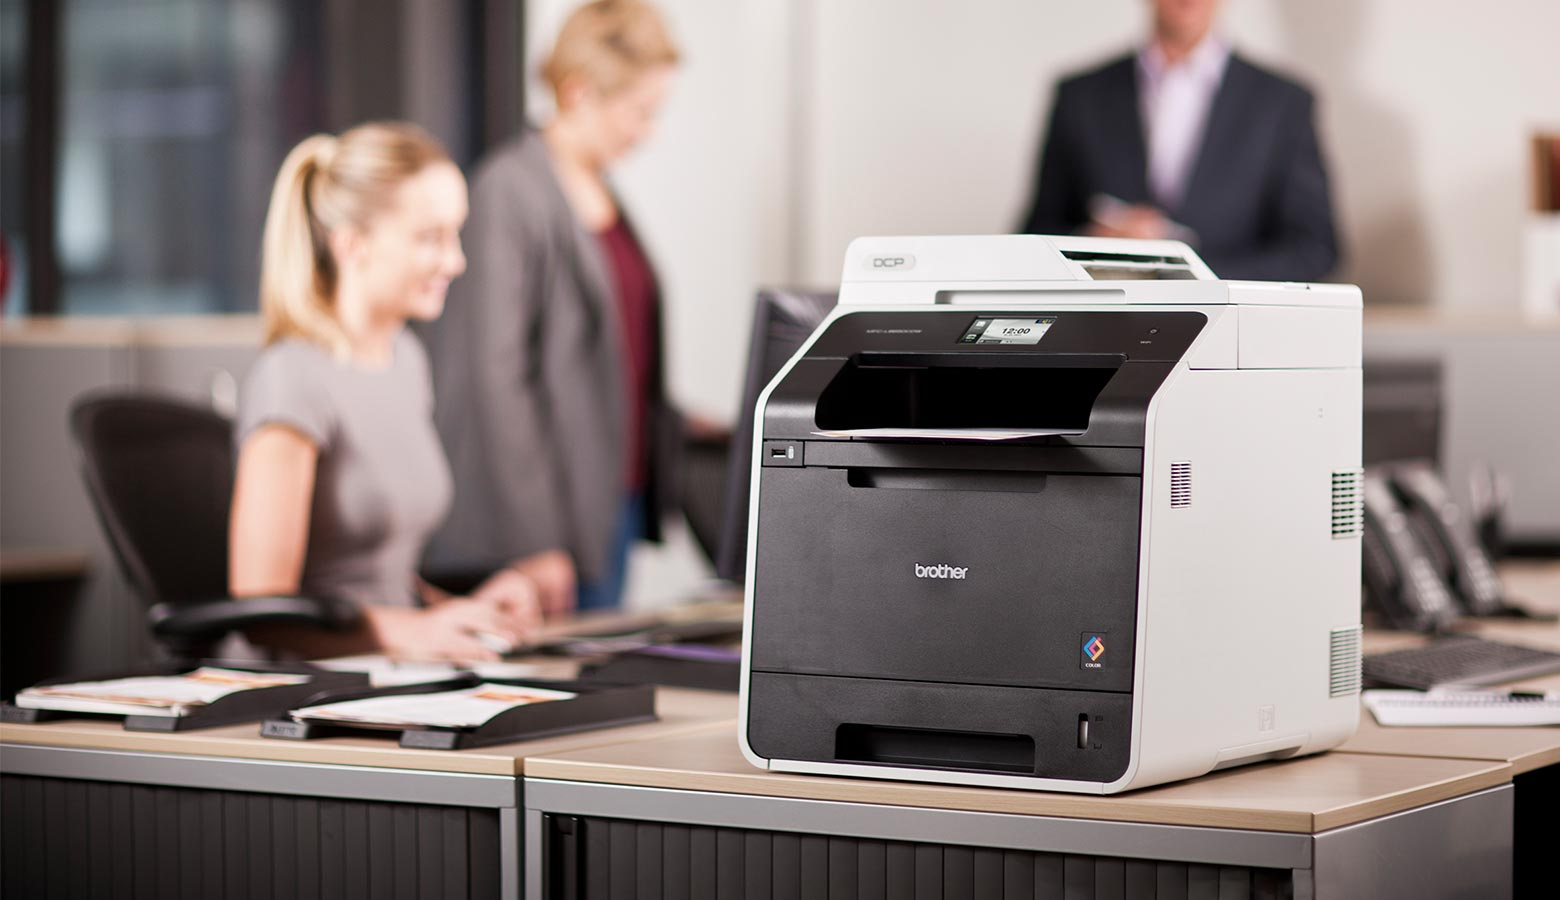 A Brother laser printer being used in an office